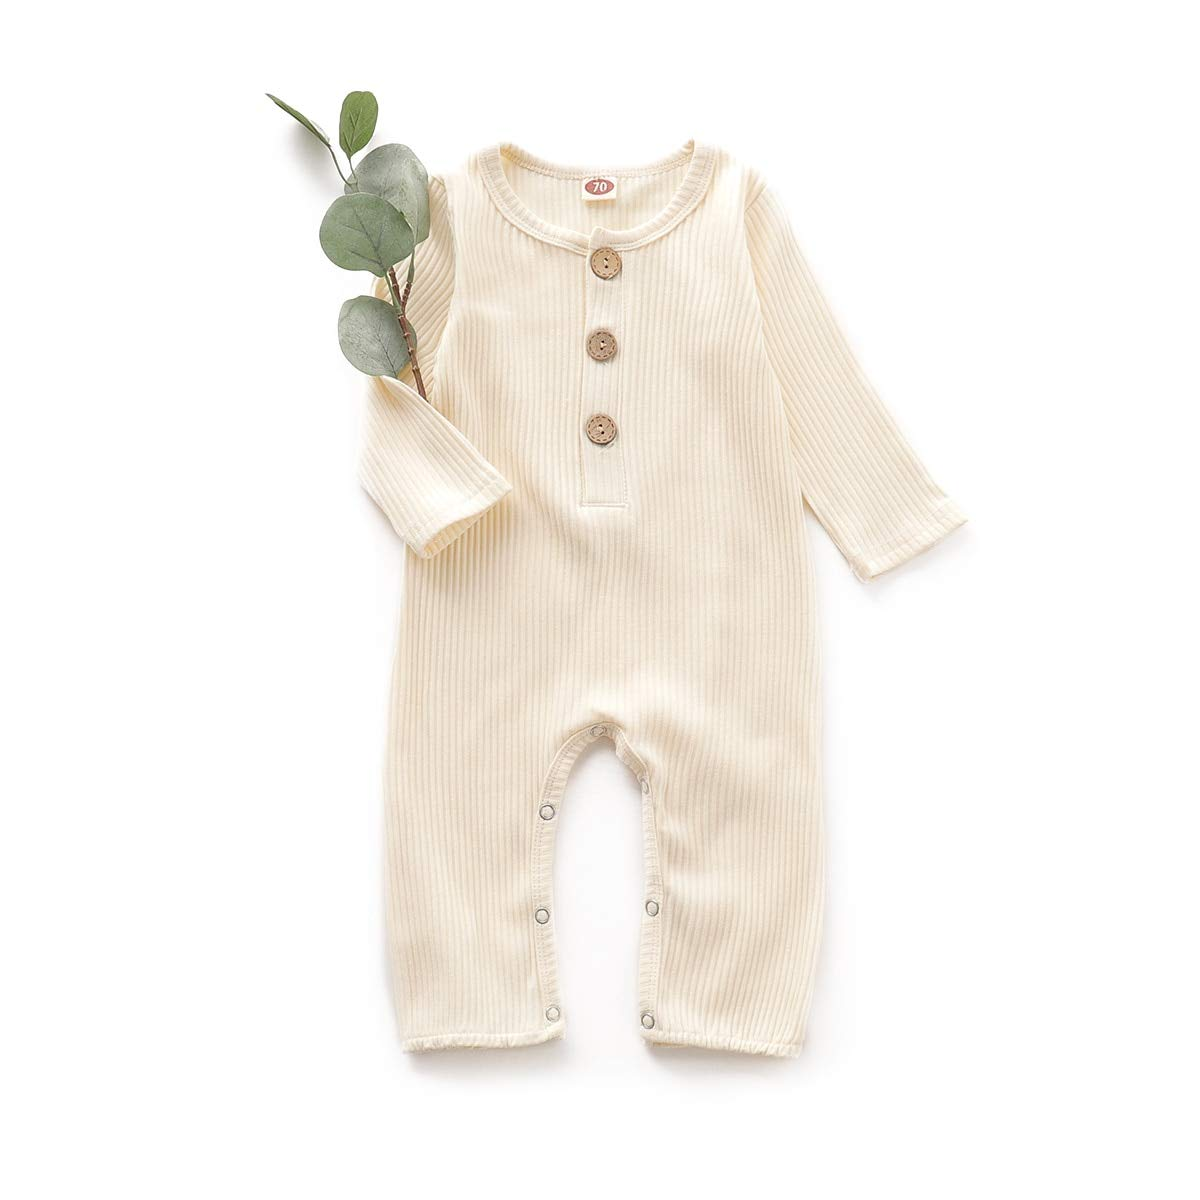 Simplee kids Baby Infant Gender Neutral Long-Sleeves Jumper Romper Onesies Outfit for 0-18 Months Baby Girl and Boy